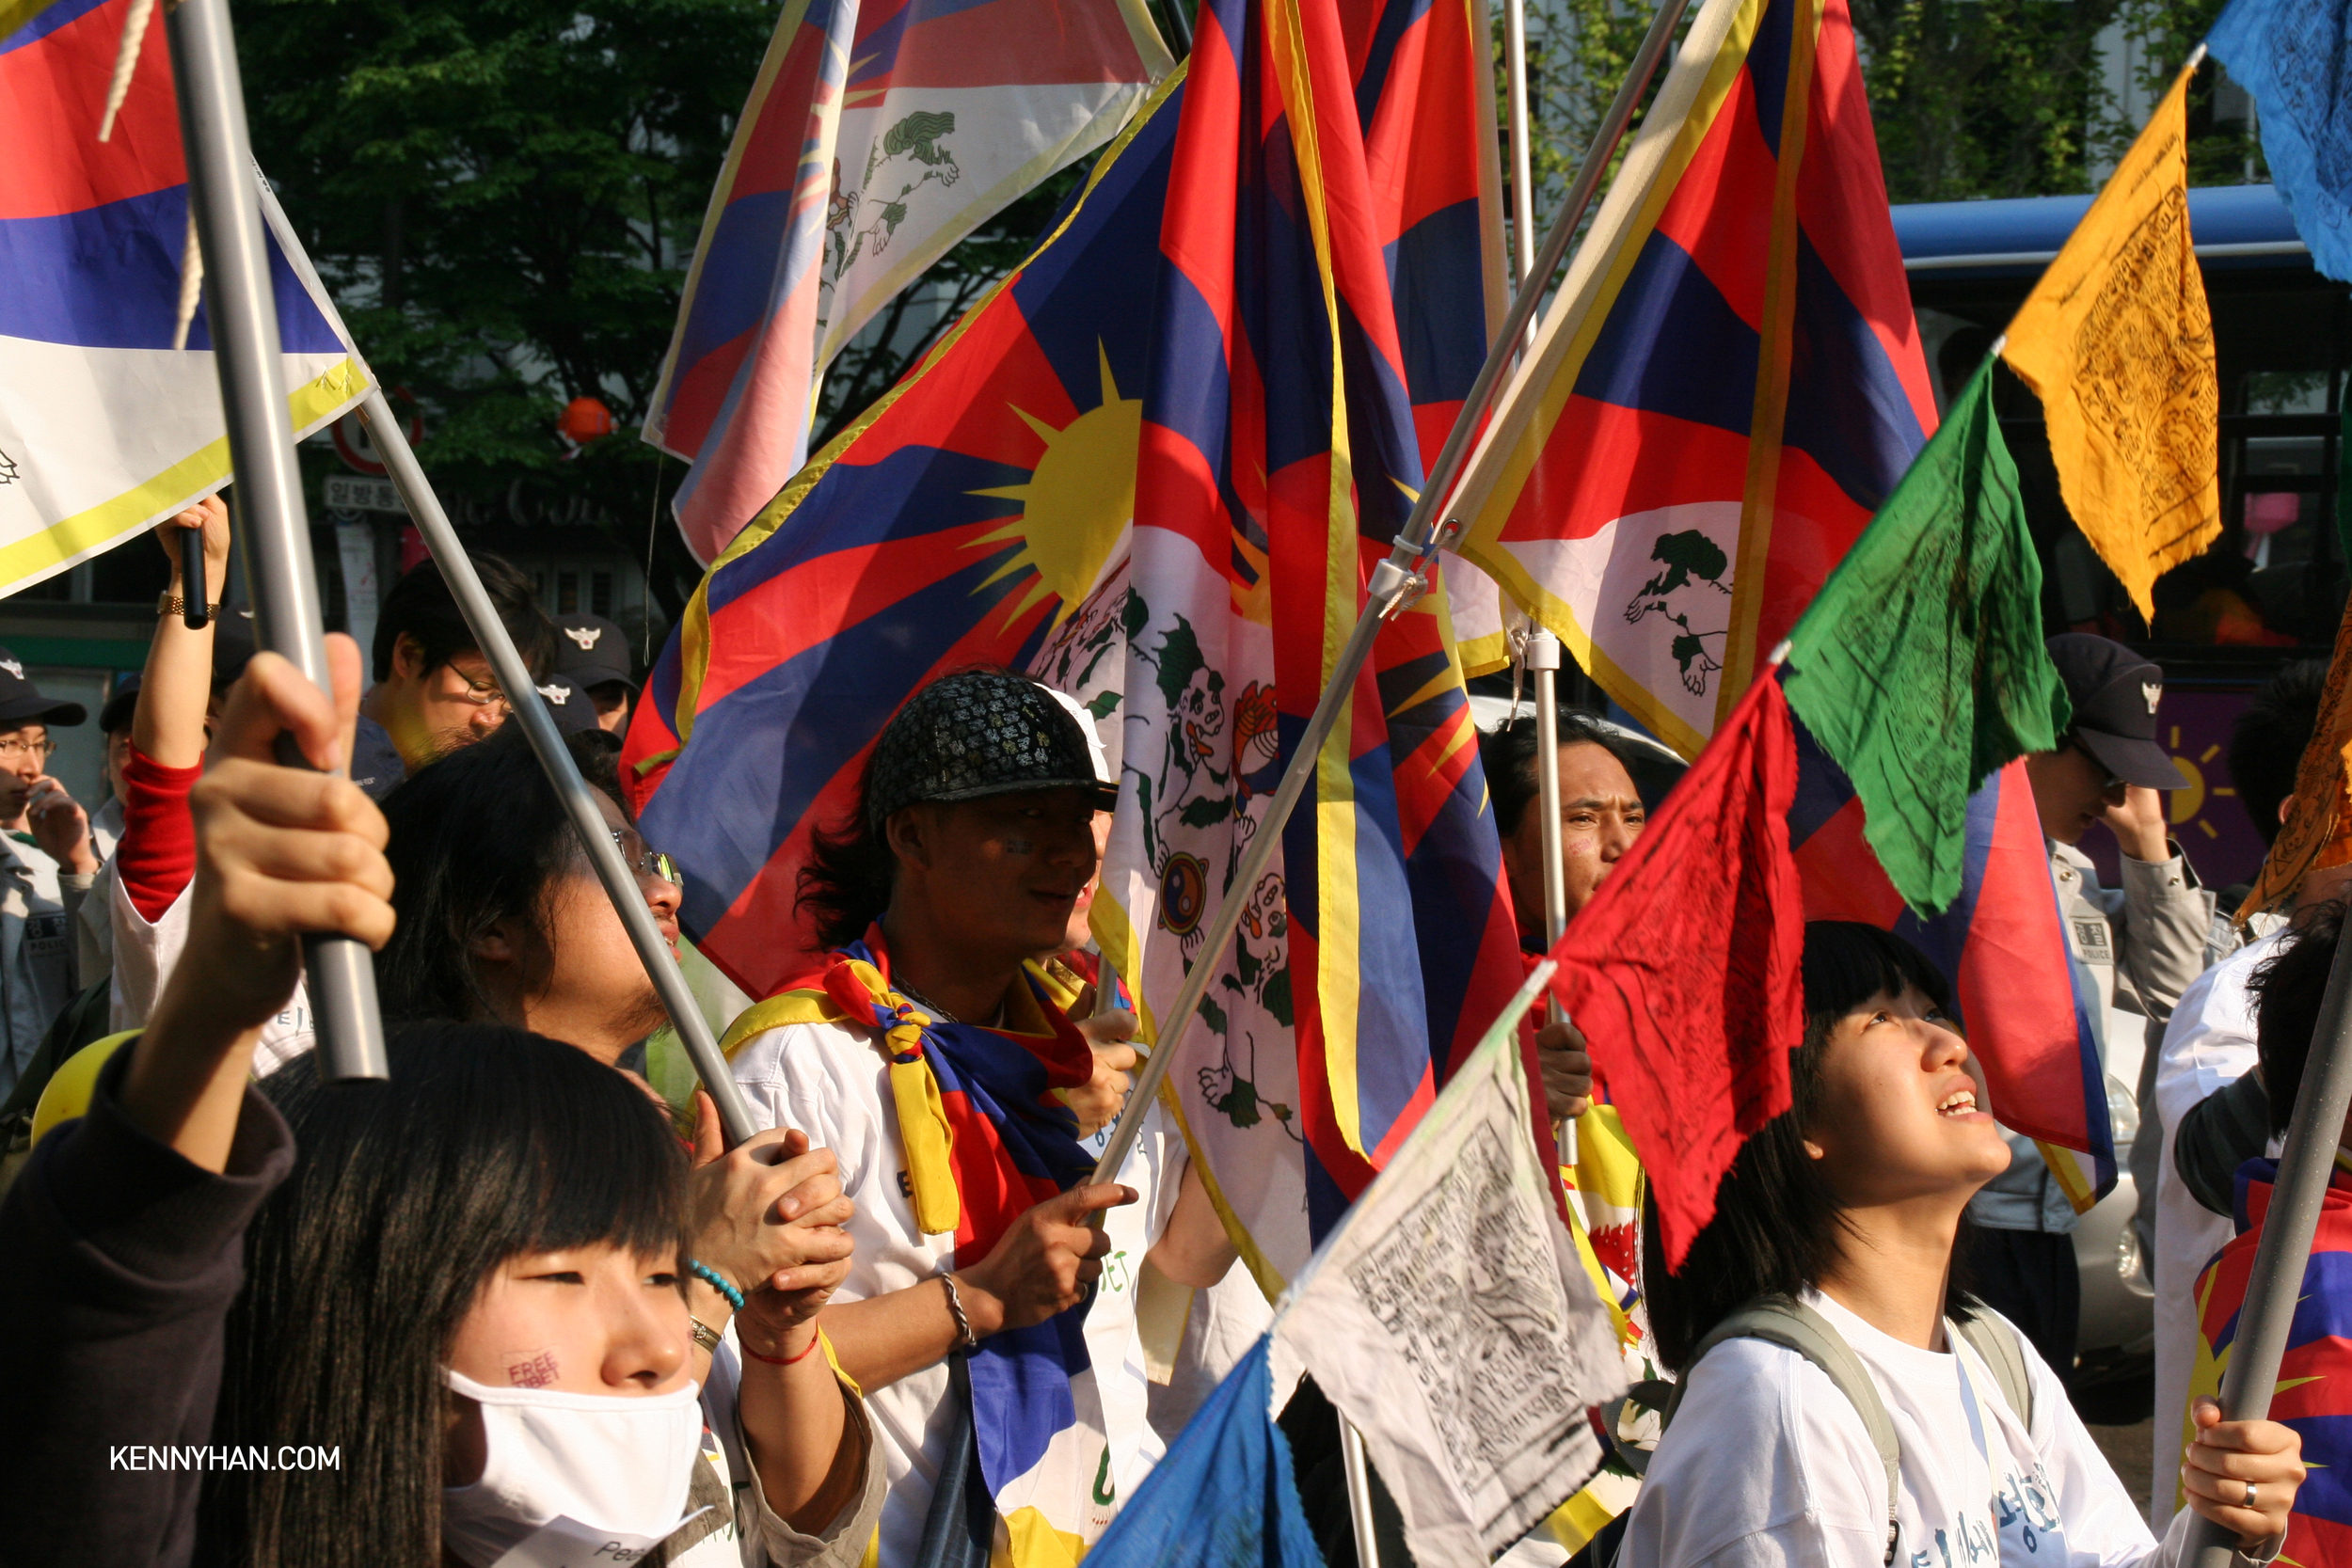 Tibetan independence movement rally in Seoul, South Korea ca.2008